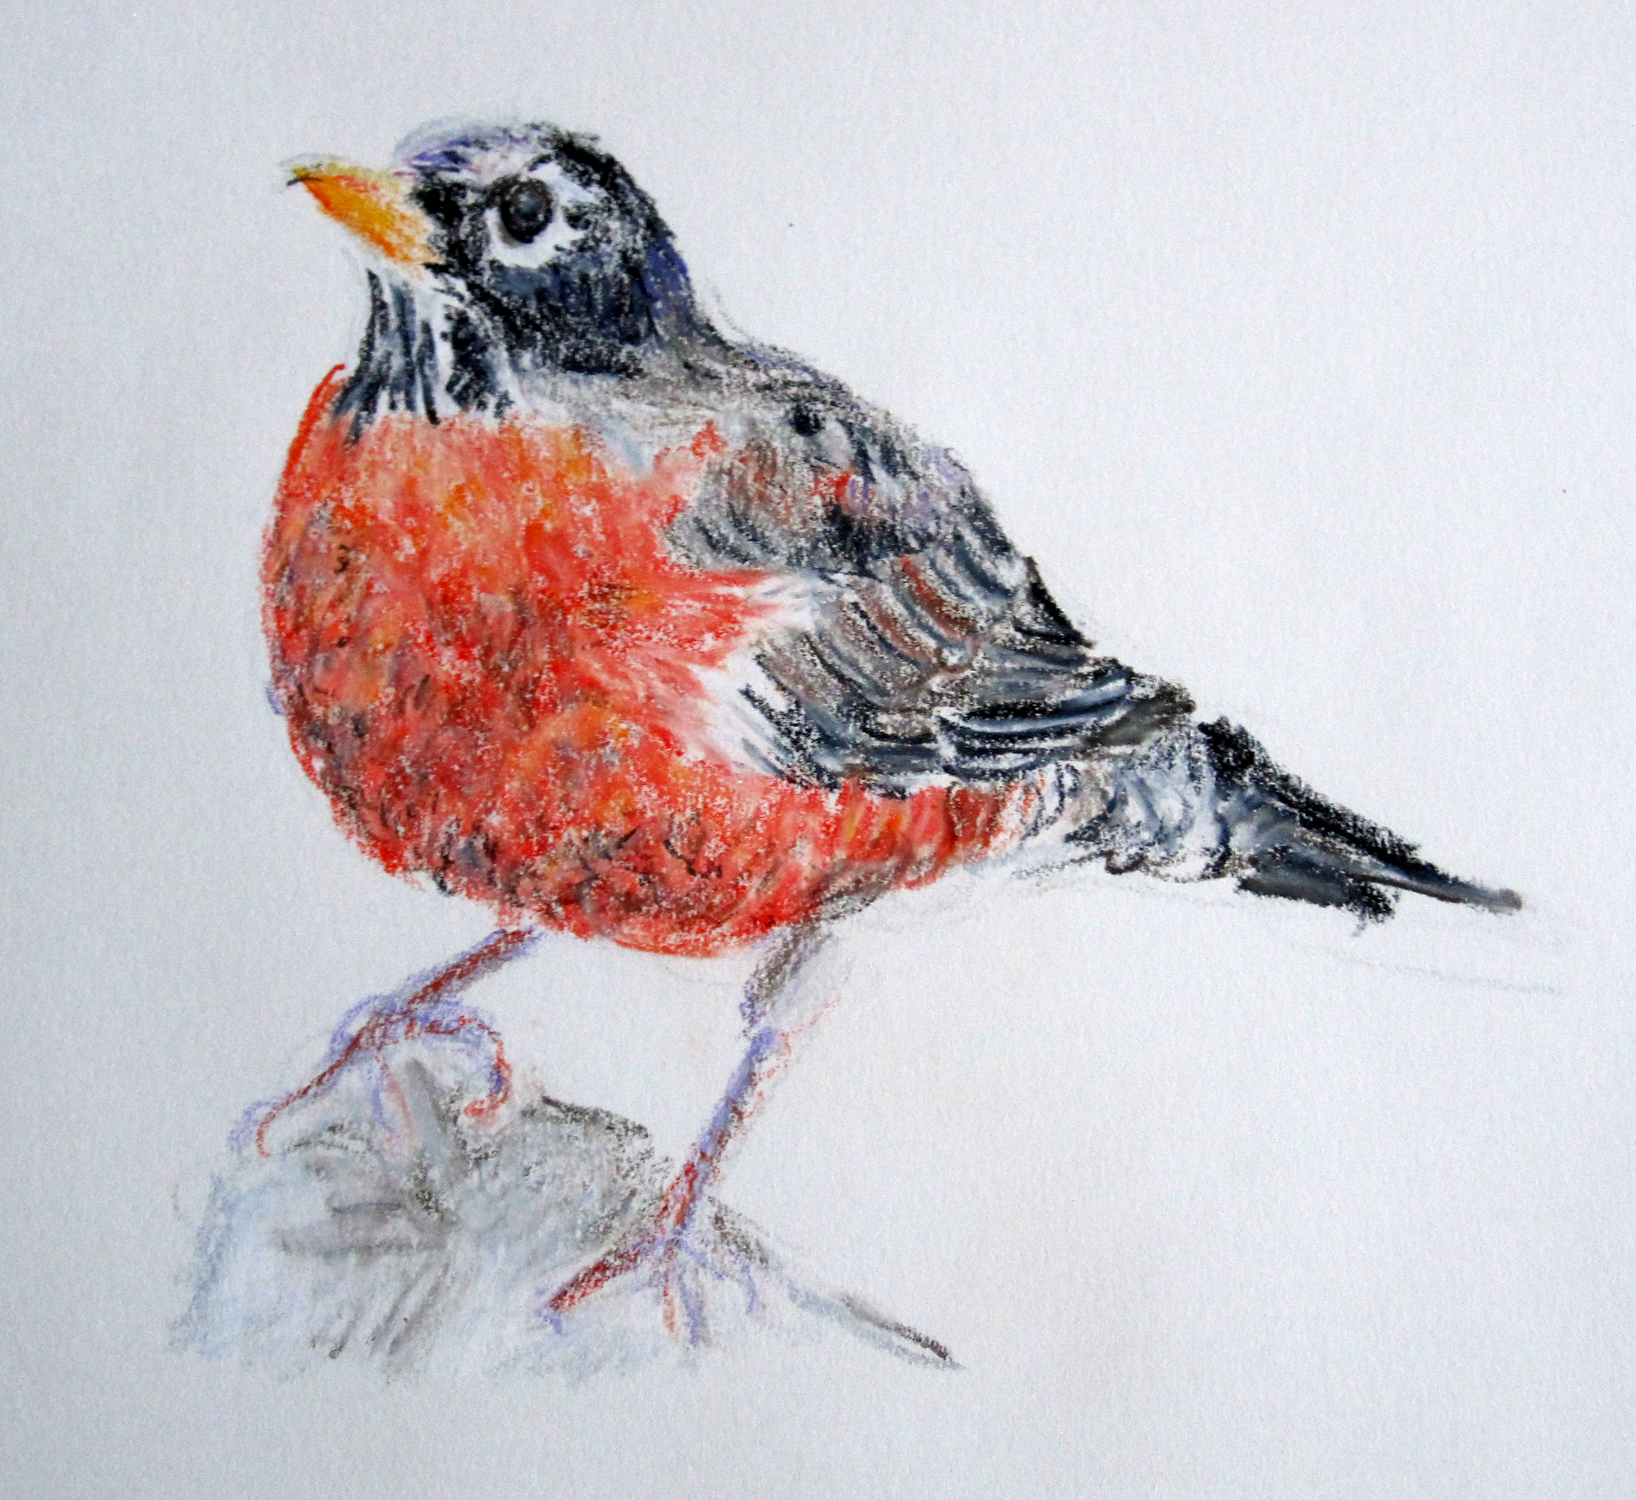 red robin bird drawing at getdrawings com free for personal use